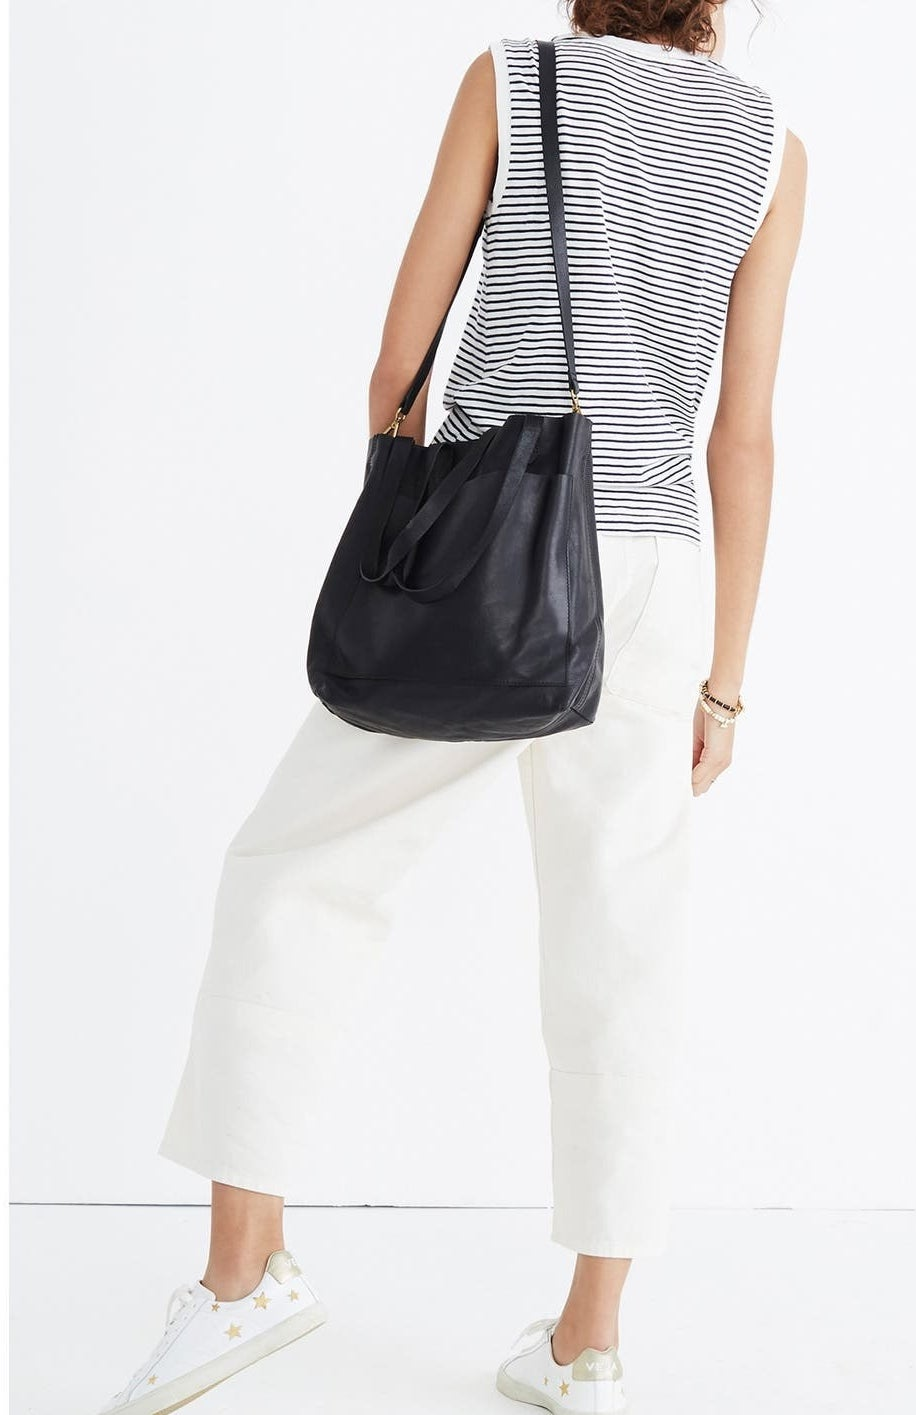 The black leather tote bag with shoulder straps over a model's shoulder and a large pocket on the front with shorter straps